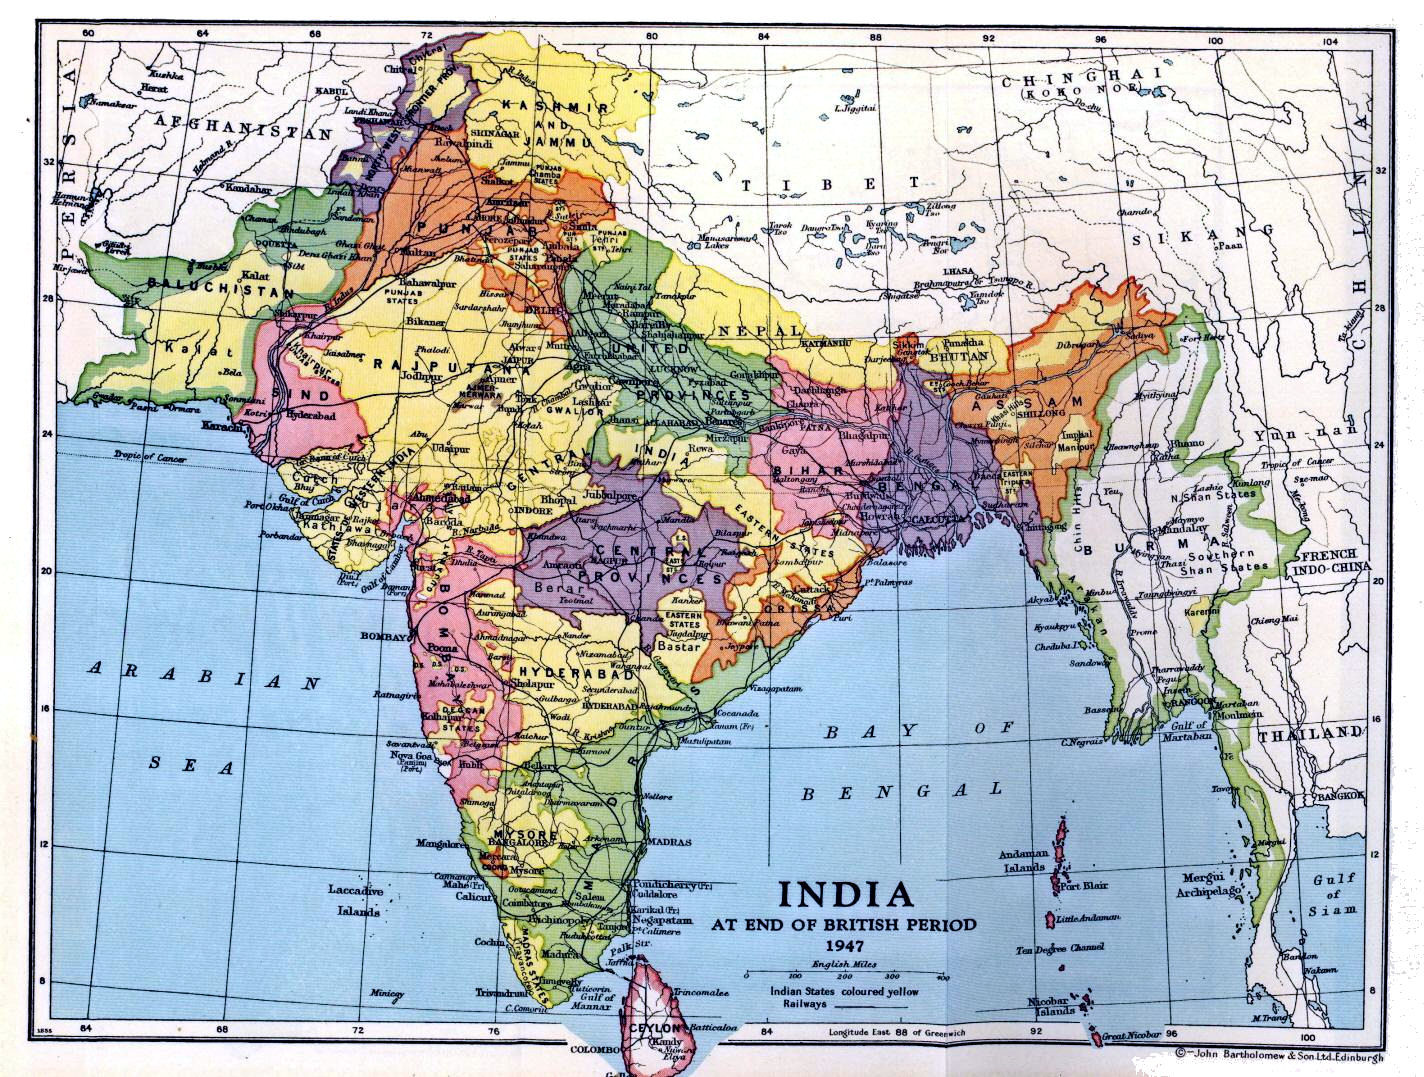 European domination of the indian subcontinent